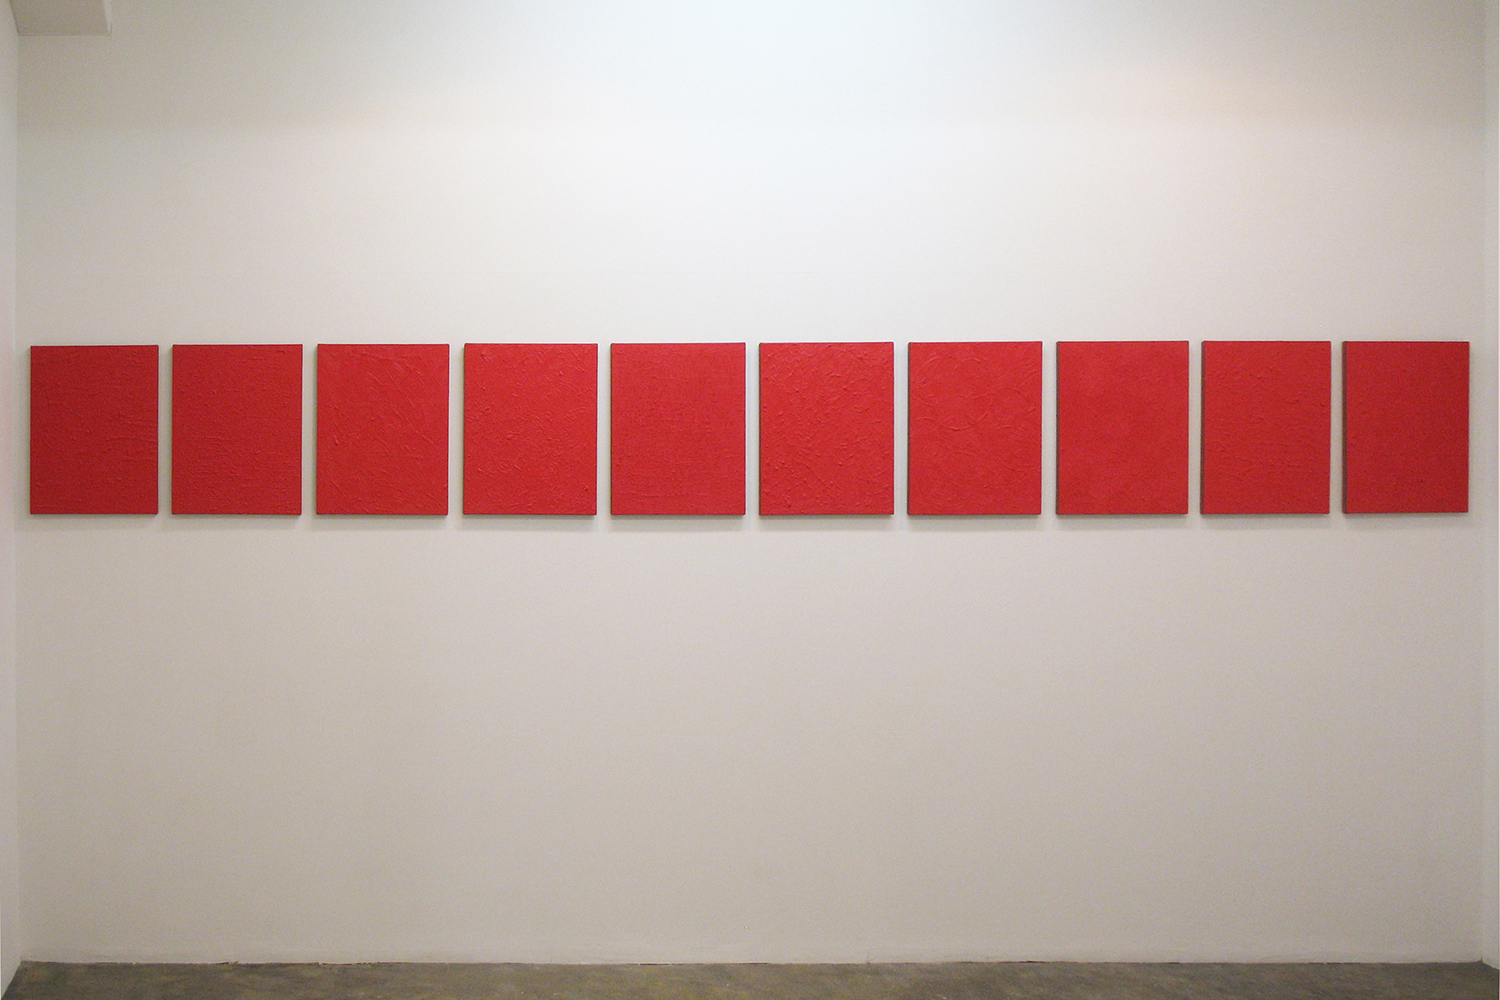 Installation View: Untitled - Beni Red|Oil on aluminum|455 x 380 mm|2012 each